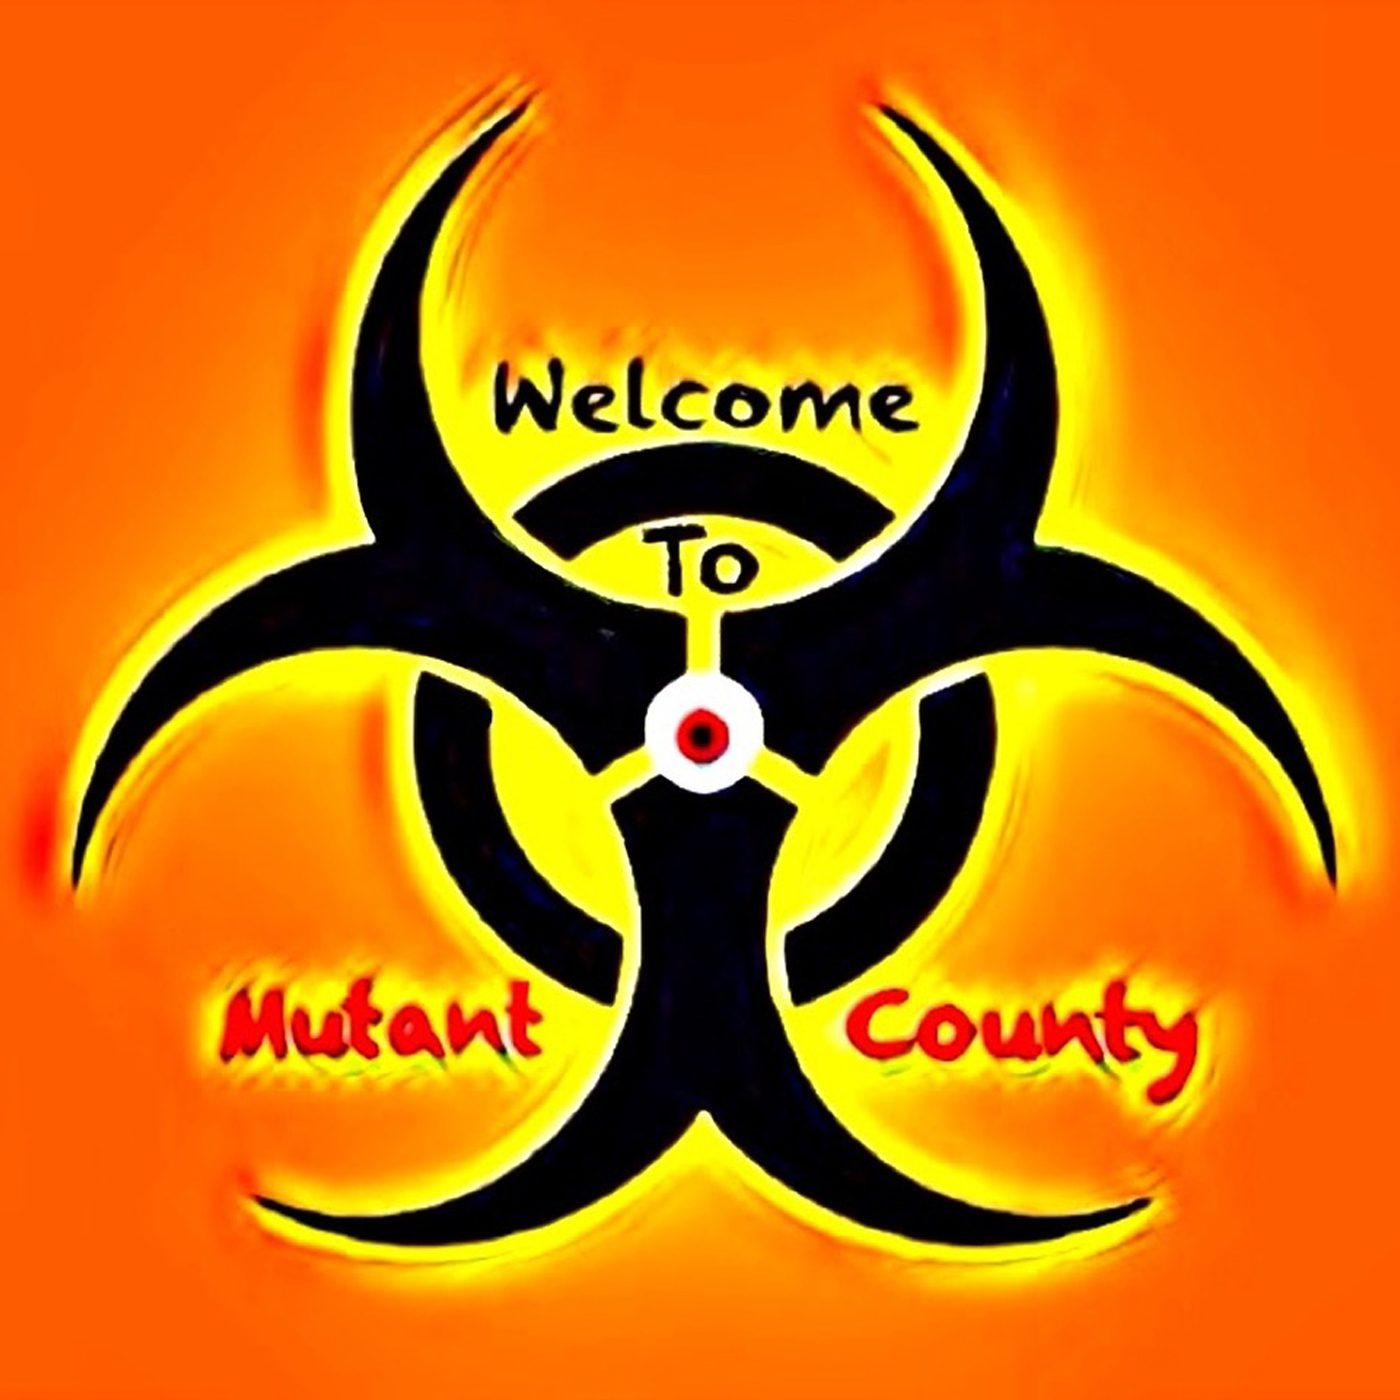 Welcome to Mutant County